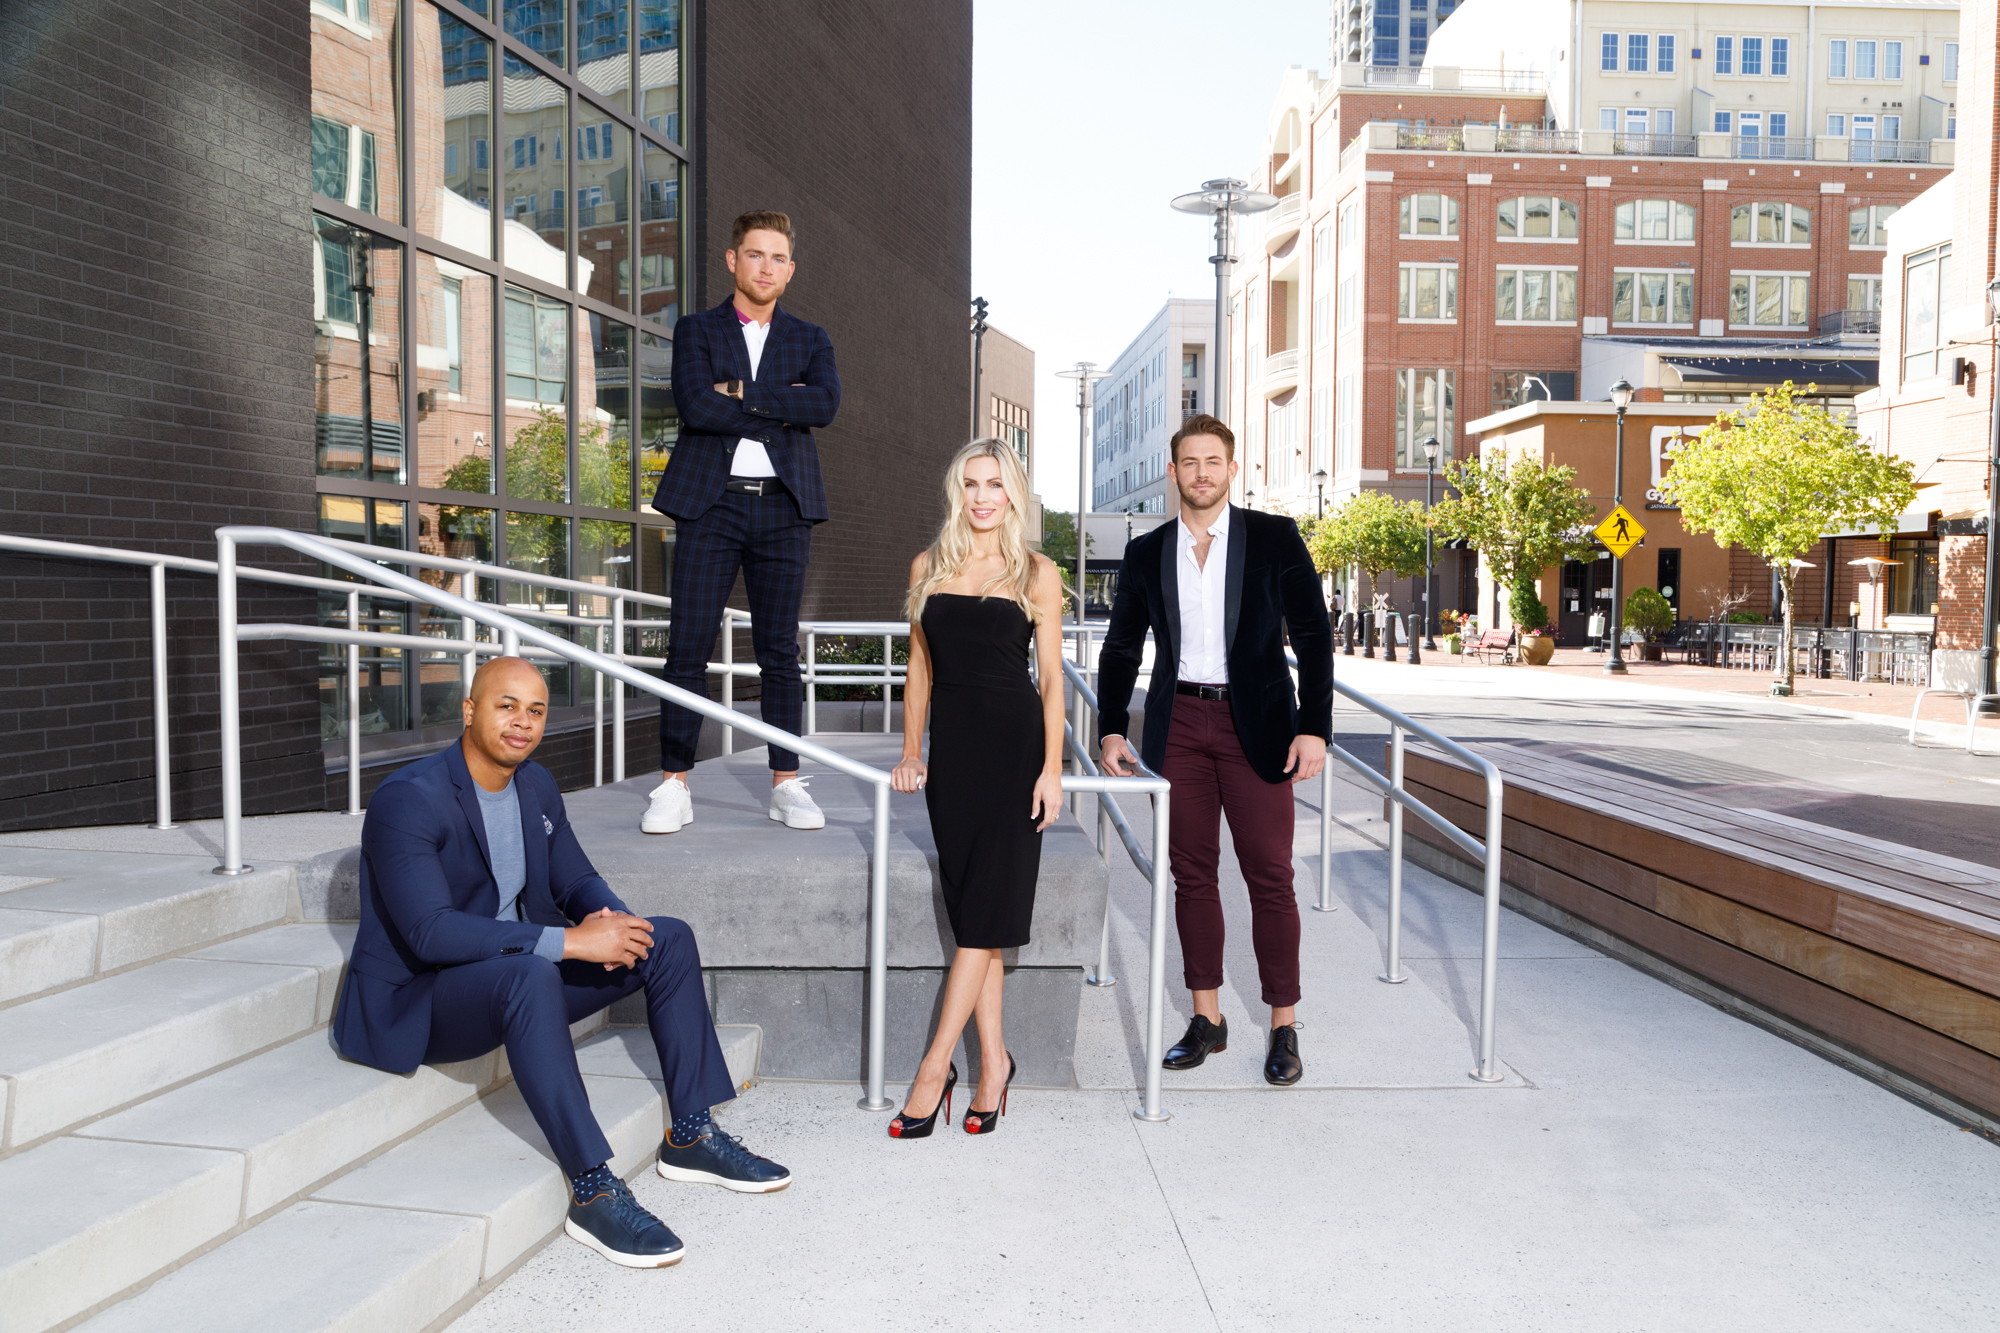 Patrick Heagney photographs the fifty most beautiful Atlantans for Jezebel Magazines yearly feature on the steps of Atlantic Station